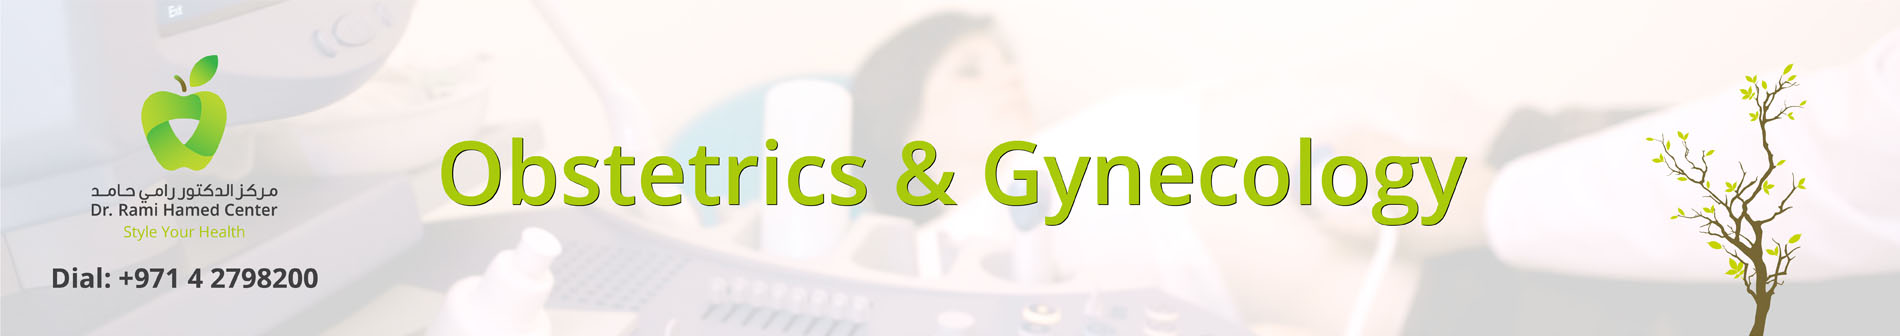 Dubai Gynaecology Clinic